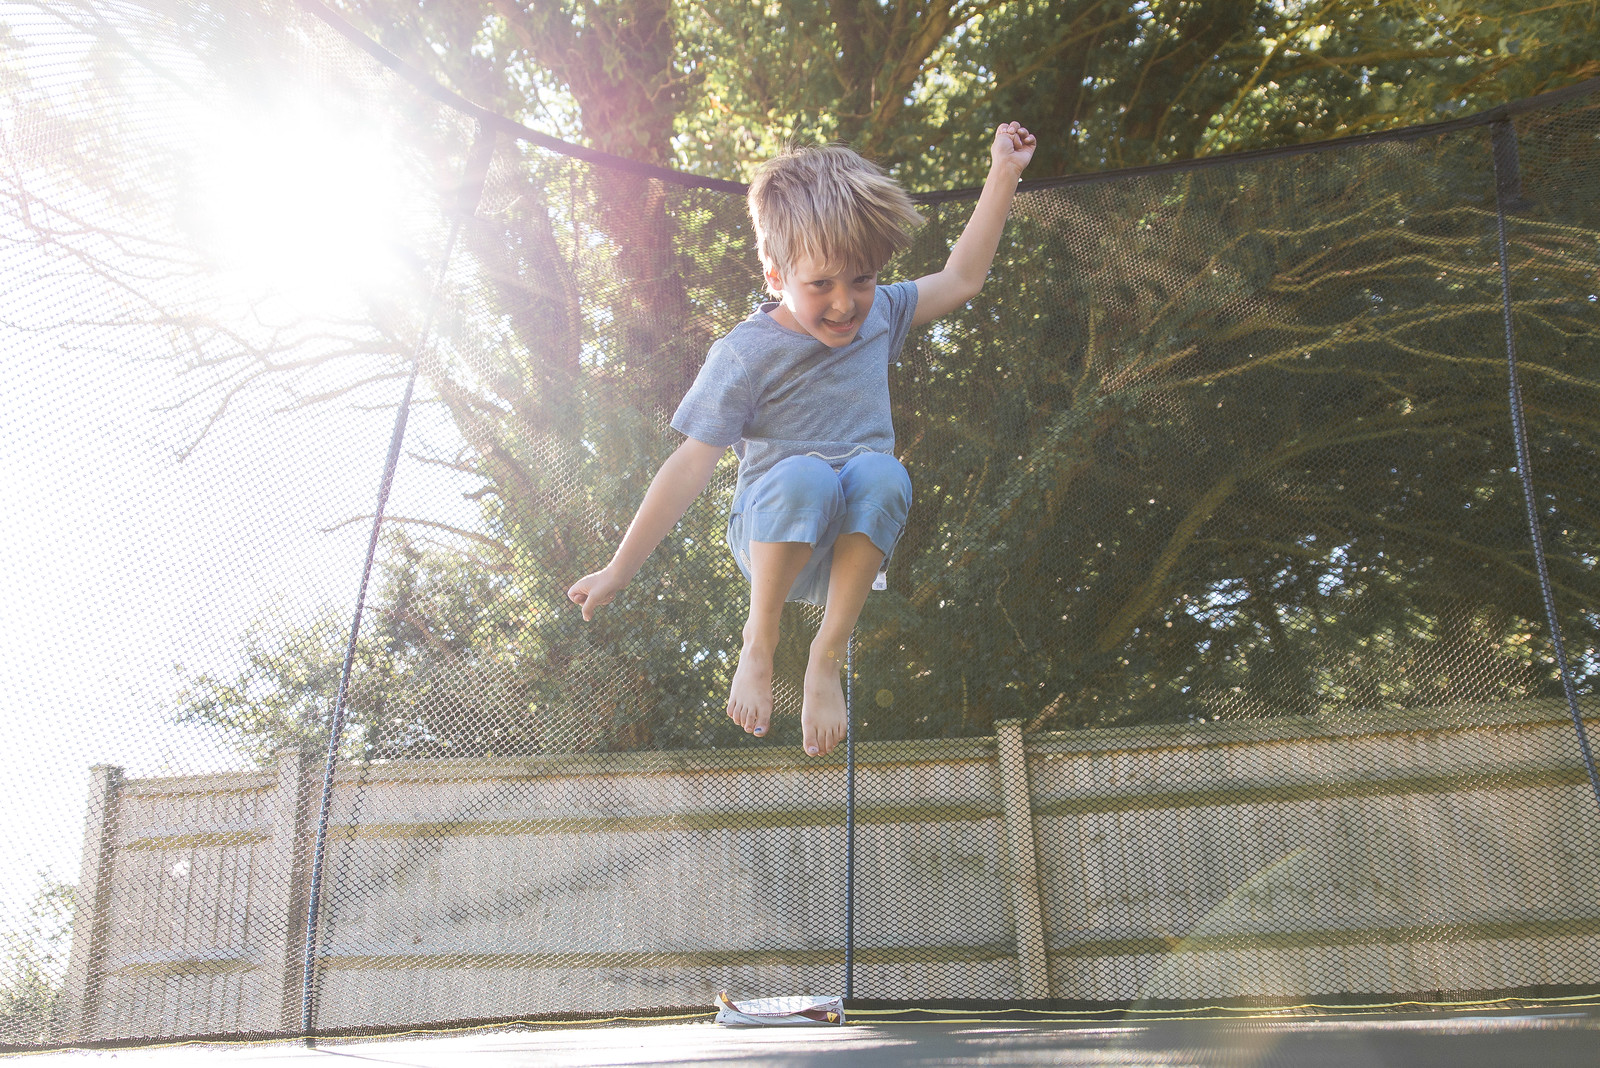 How to take great photos of your kids on the trampoline - practical tips to capture stunning images